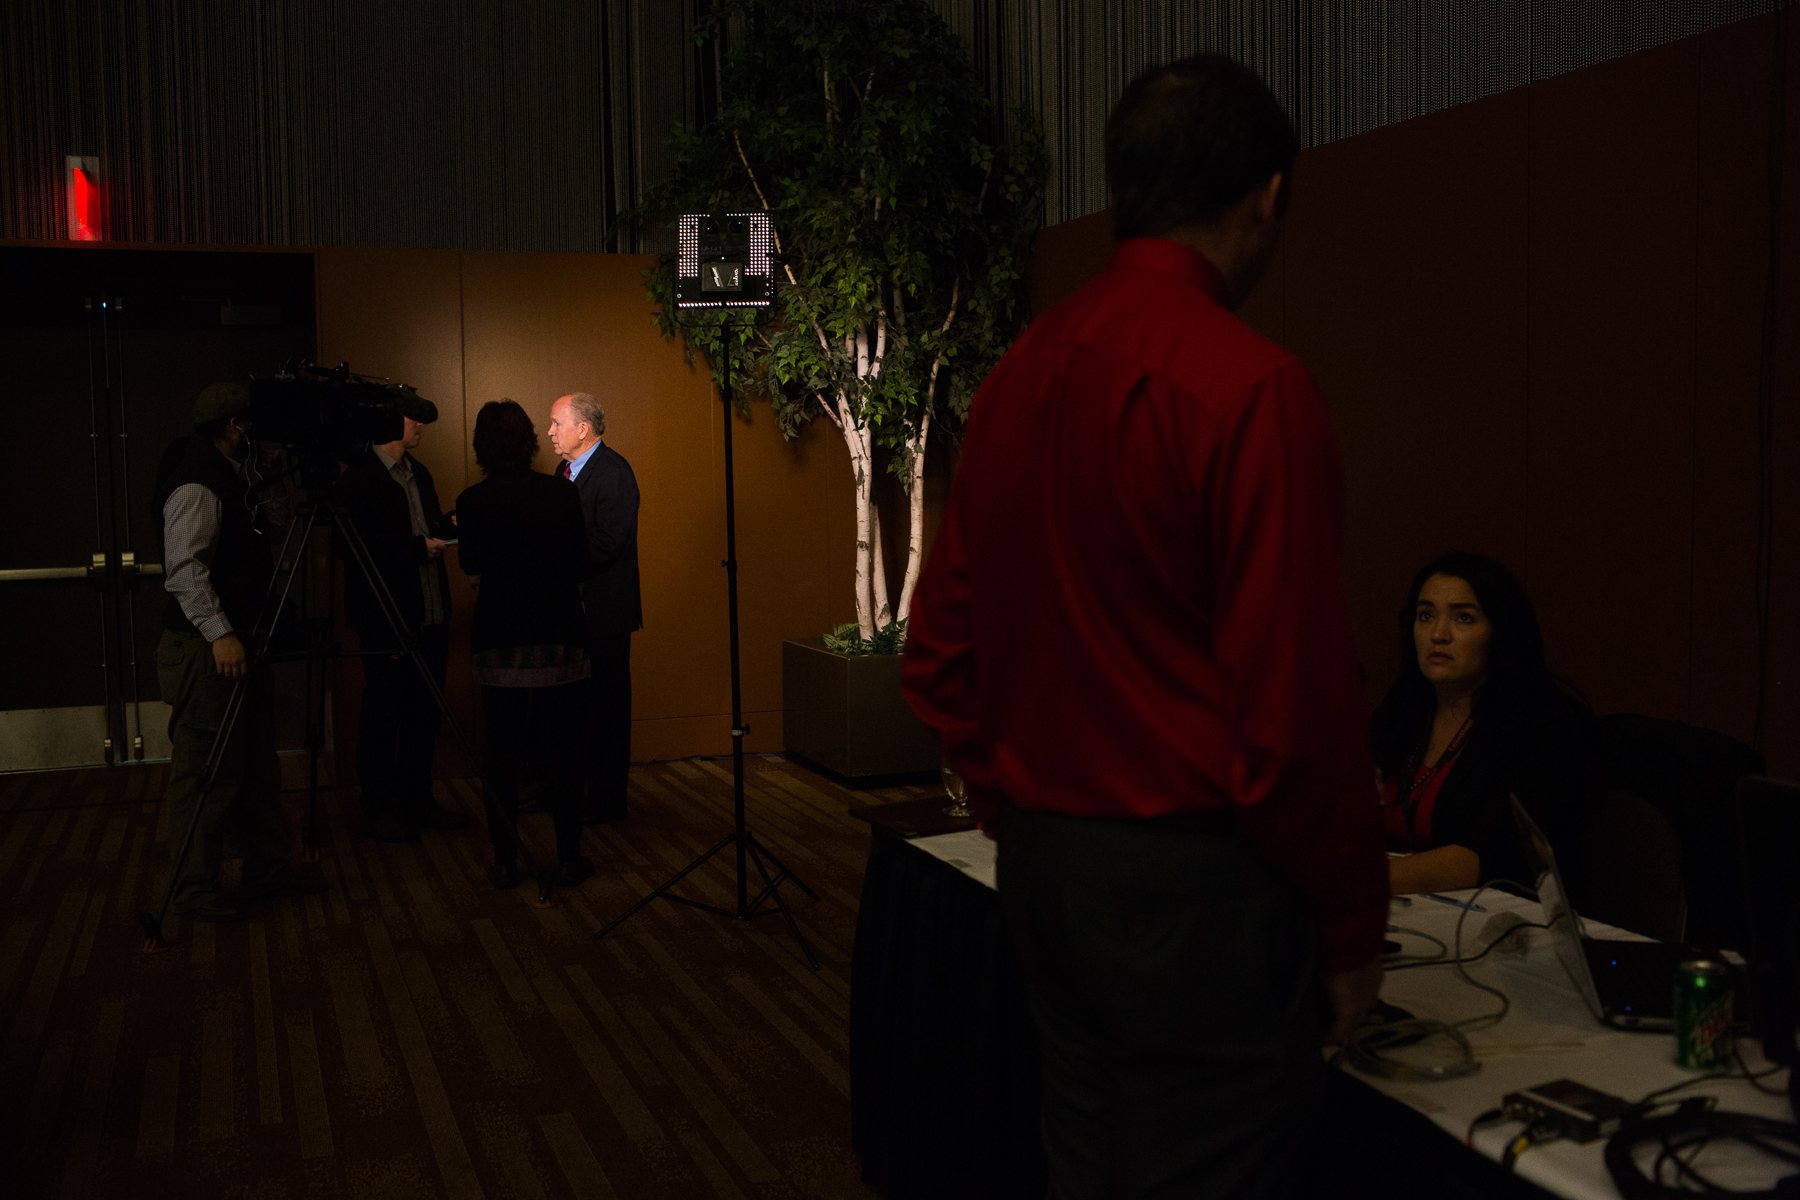 Alaska Governor Elect Bill Walker gave interviews following his remarks at the 35th annual Alaska Resources Conference in Anchorage, Alaska on Thursday, November 20, 2014.